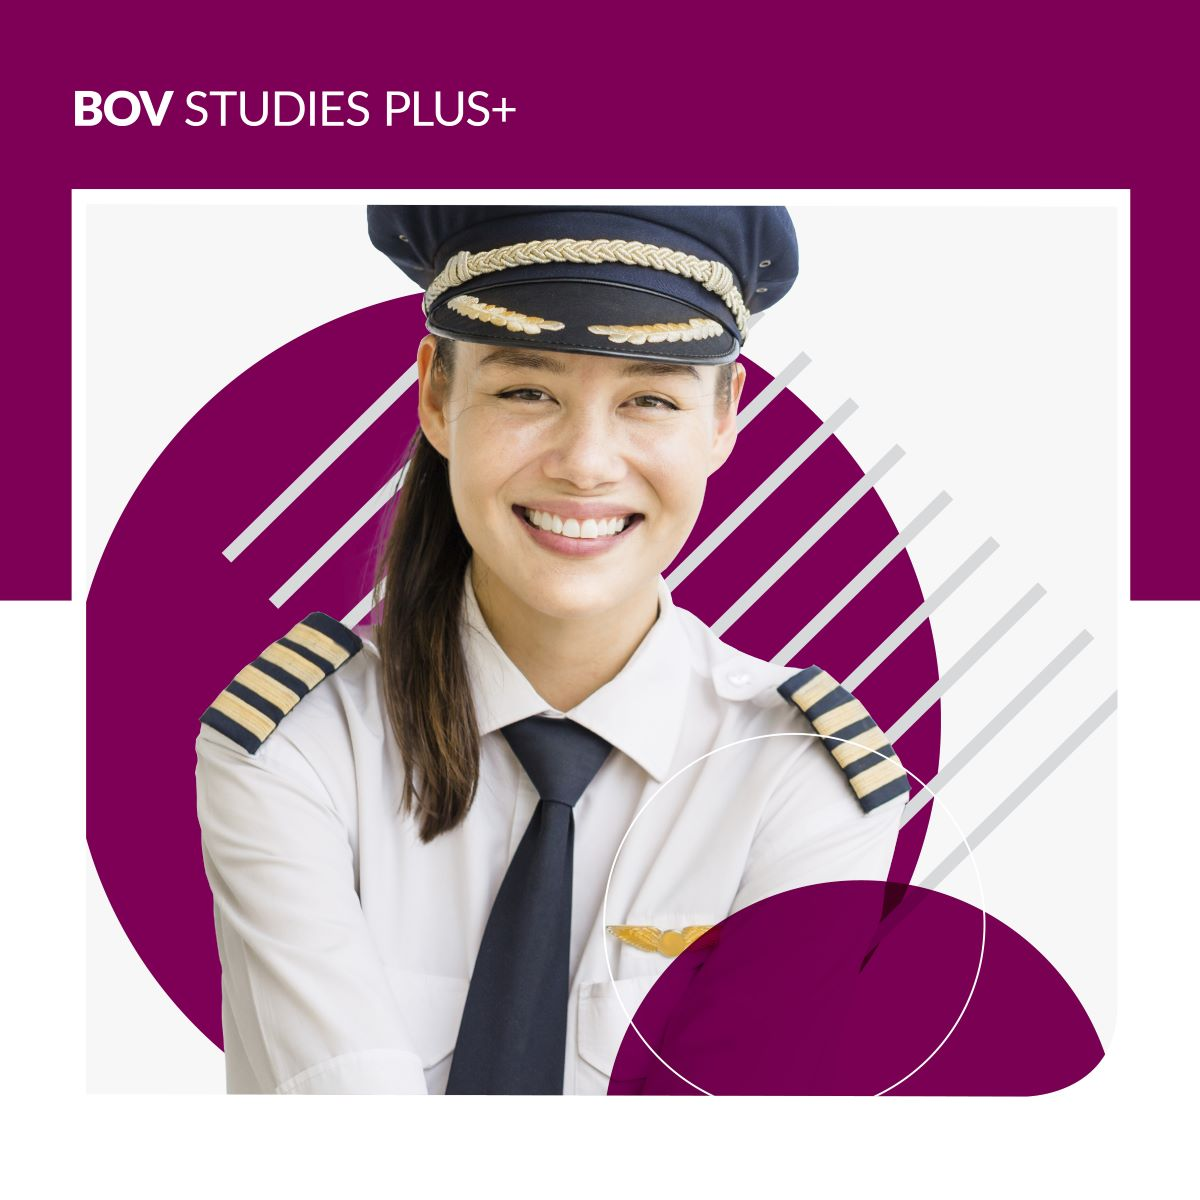 Over €5,000,000 to students through the BOV Studies Plus+